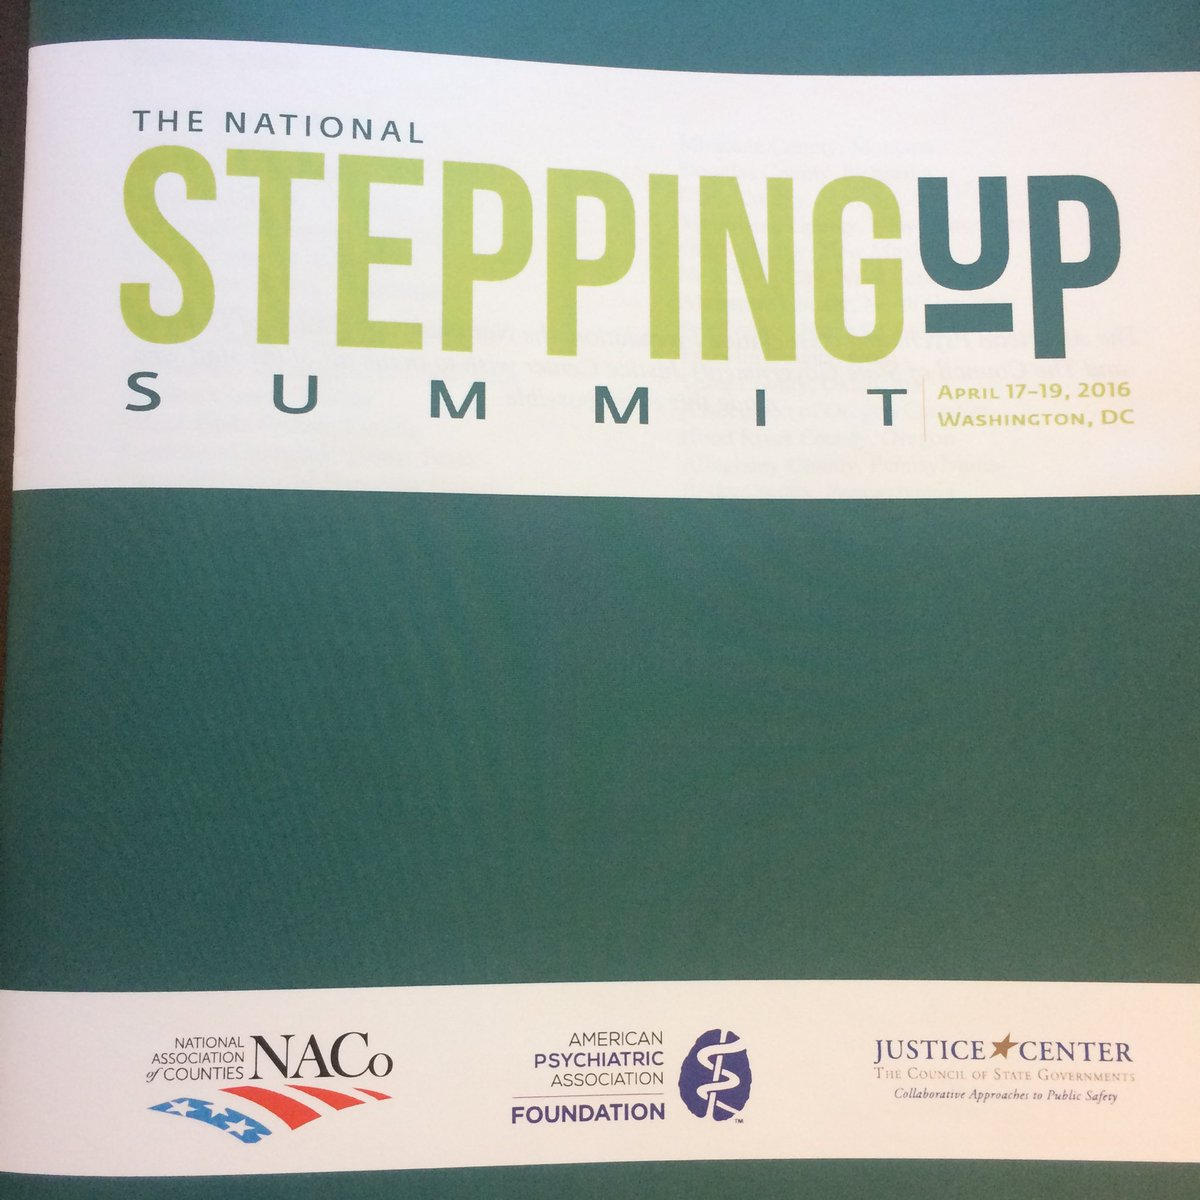 #stepup4mentalhealth. The summit begins tonight with @NACoTweets and @CSGJC https://t.co/Vs3GRqkj9S